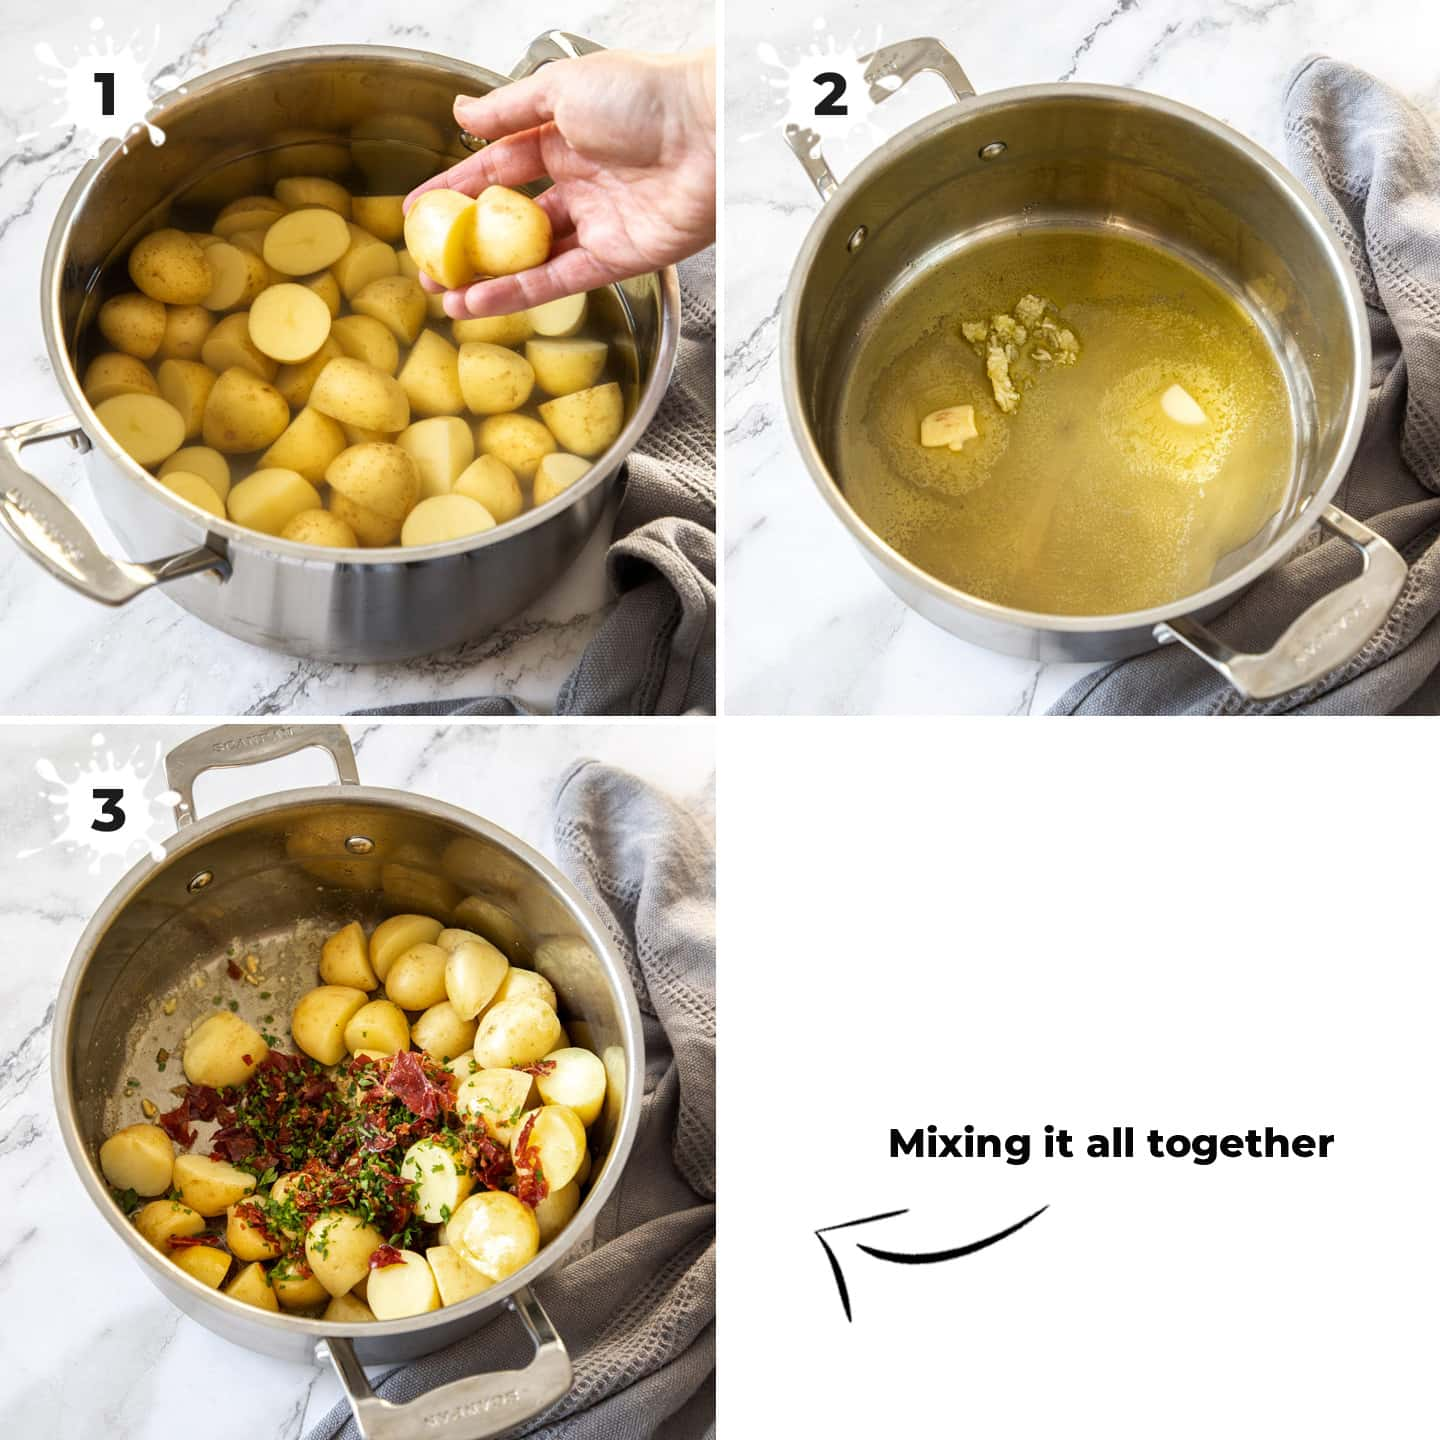 Potatoes in a saucepan being mixed with parsley and prosciutto